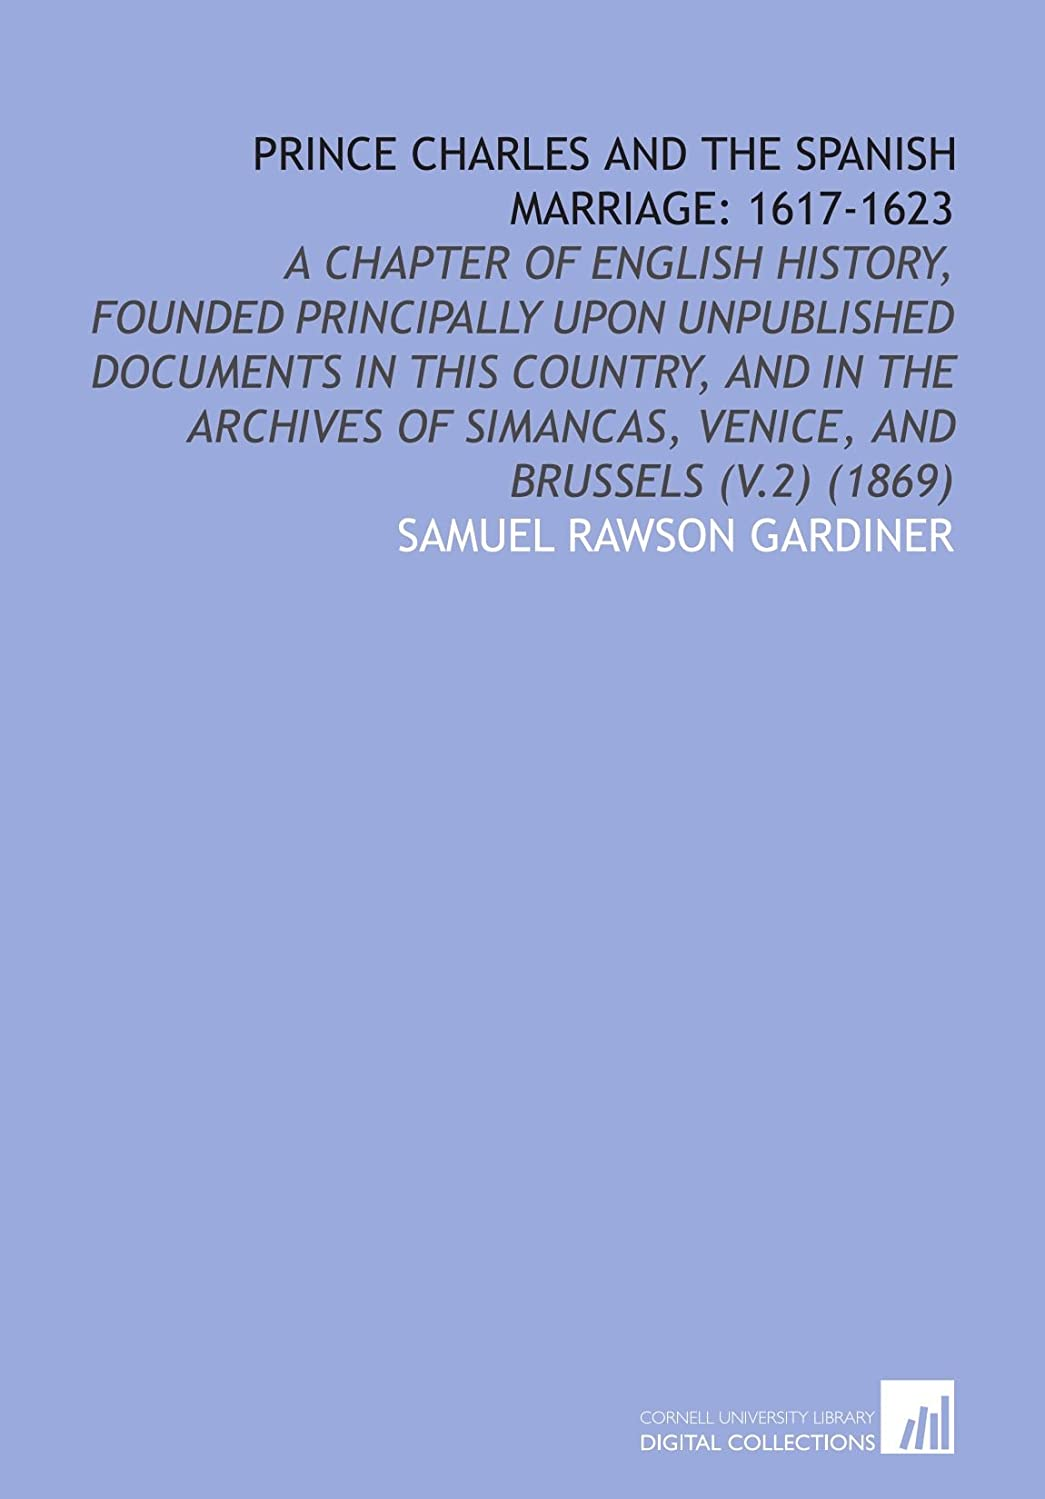 Prince Charles and the Spanish Marriage: 1617-1623: A Chapter of English History, Founded Principally Upon Unpublished Documents in This Country, and ... Simancas, Venice, and Brussels (V.2) (1869)